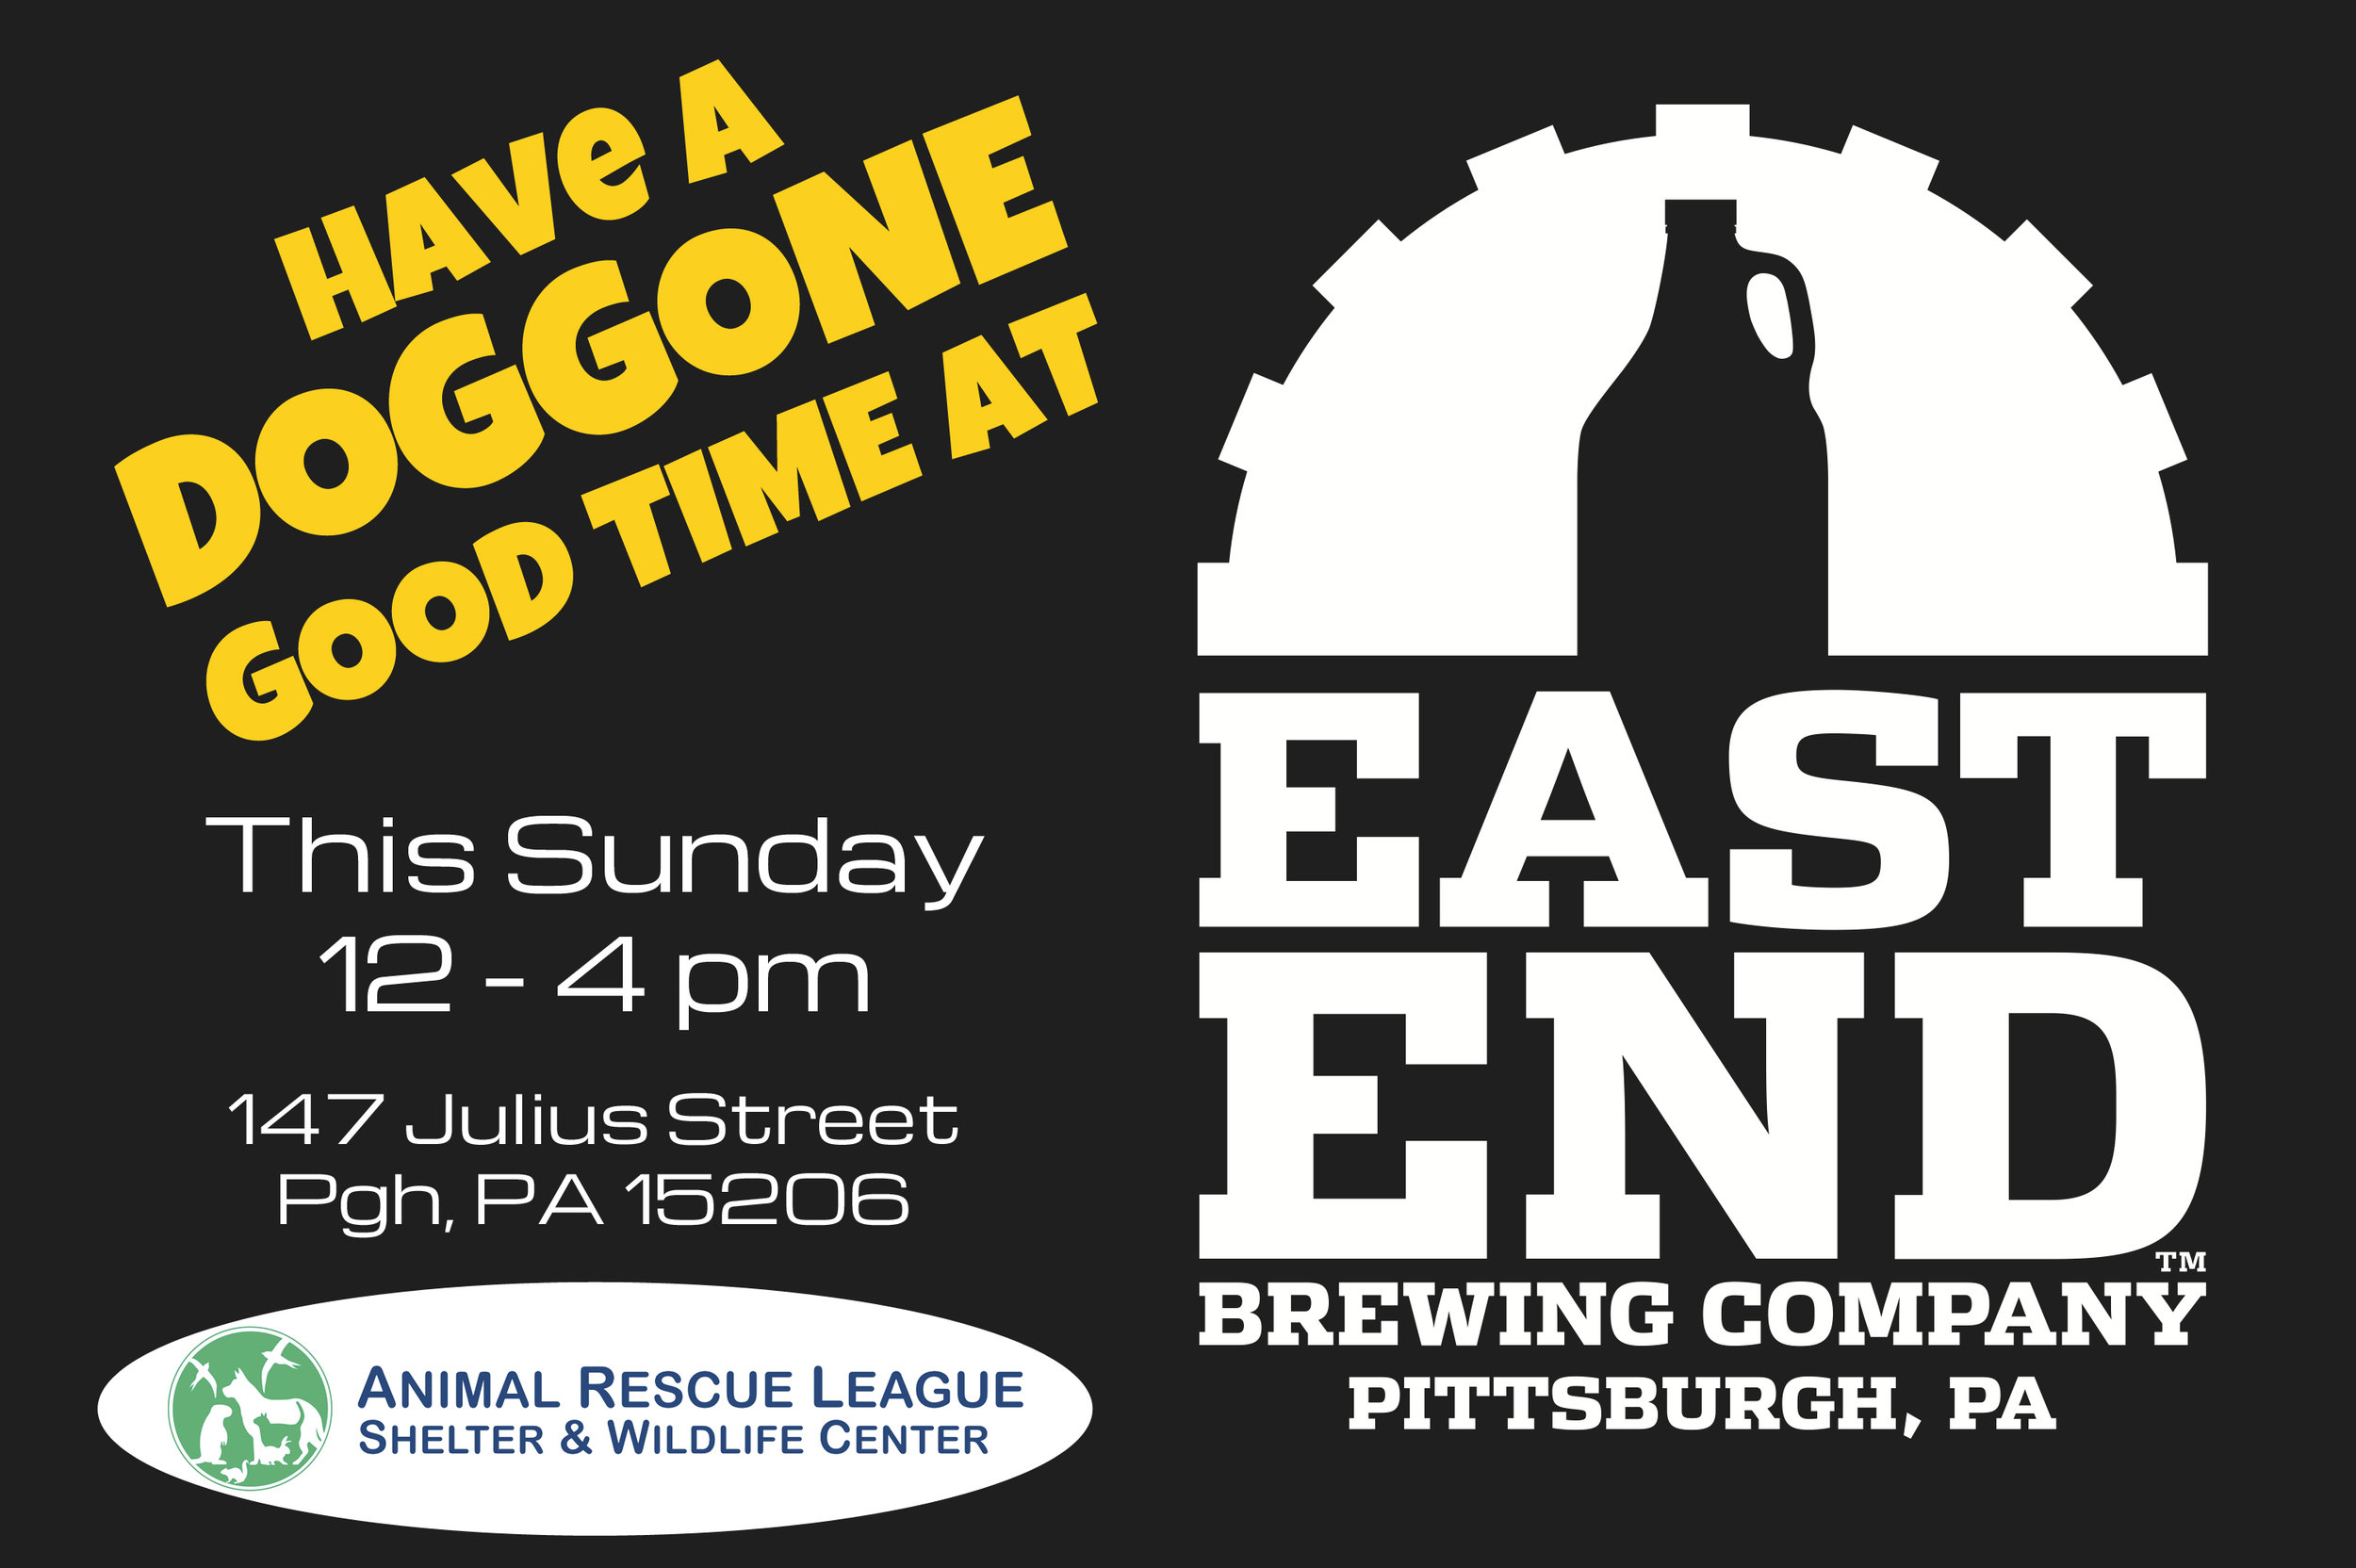 east end brew event.jpg